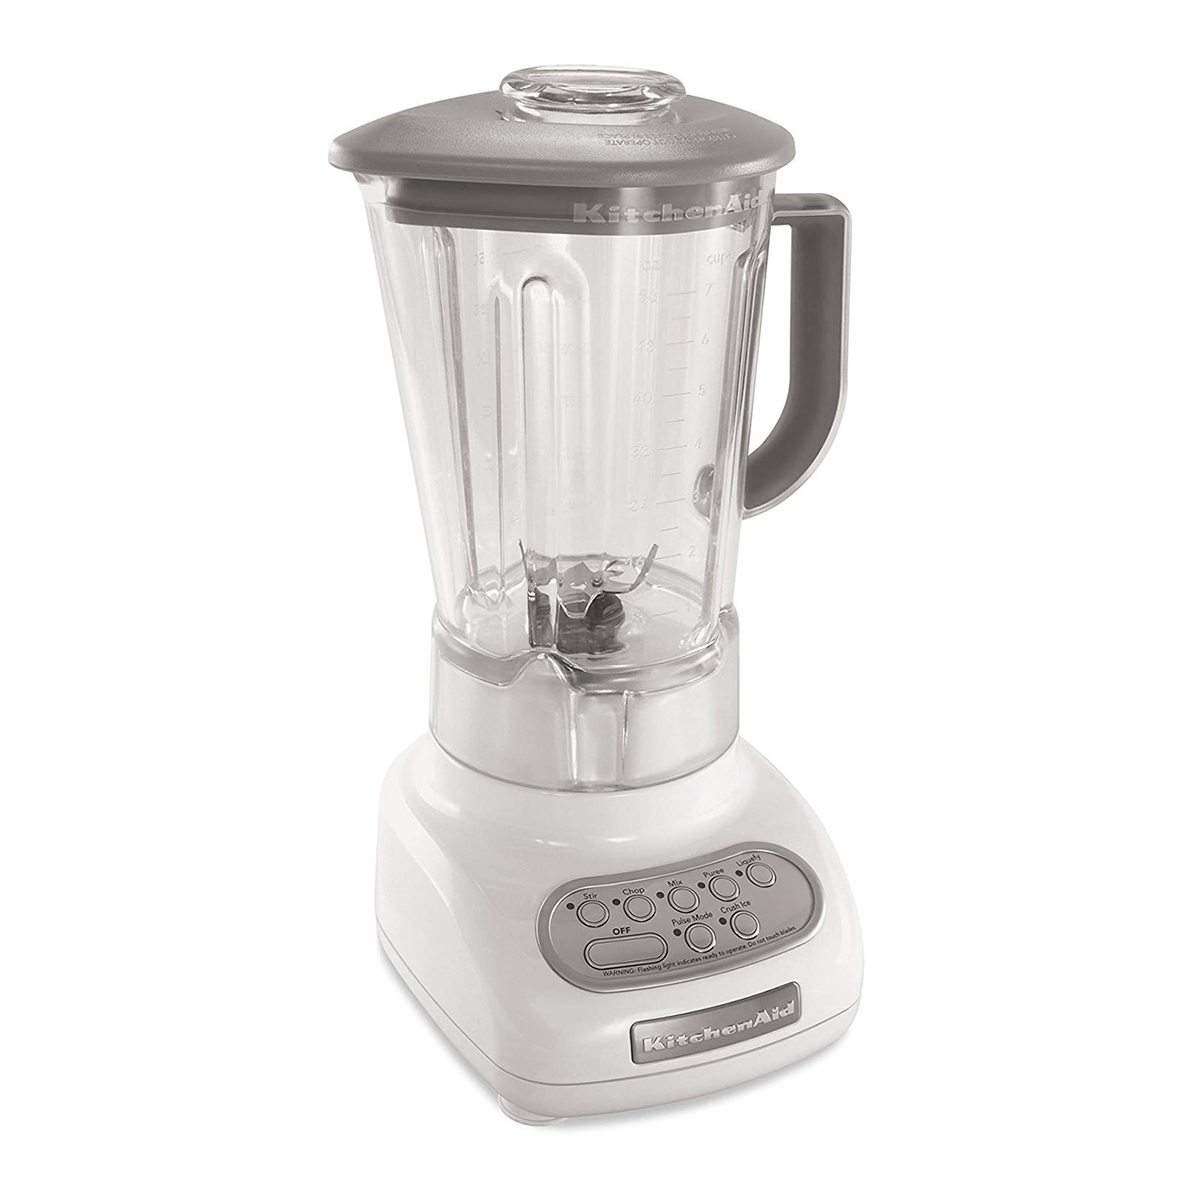 KitchenAid 5 Speed Kitchen Blender